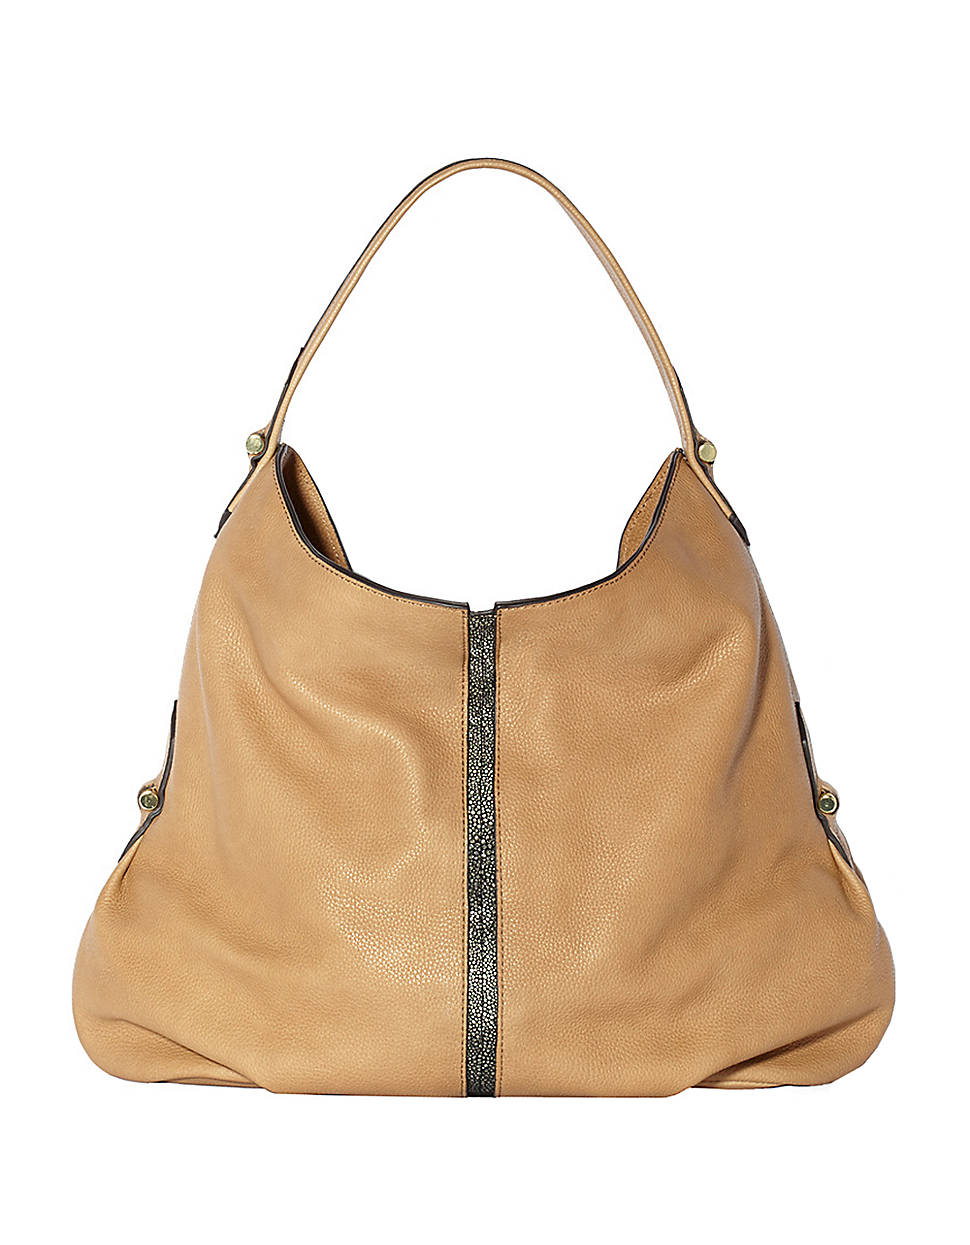 Vince Camuto Margo Leather Hobo Bag in Brown | Lyst